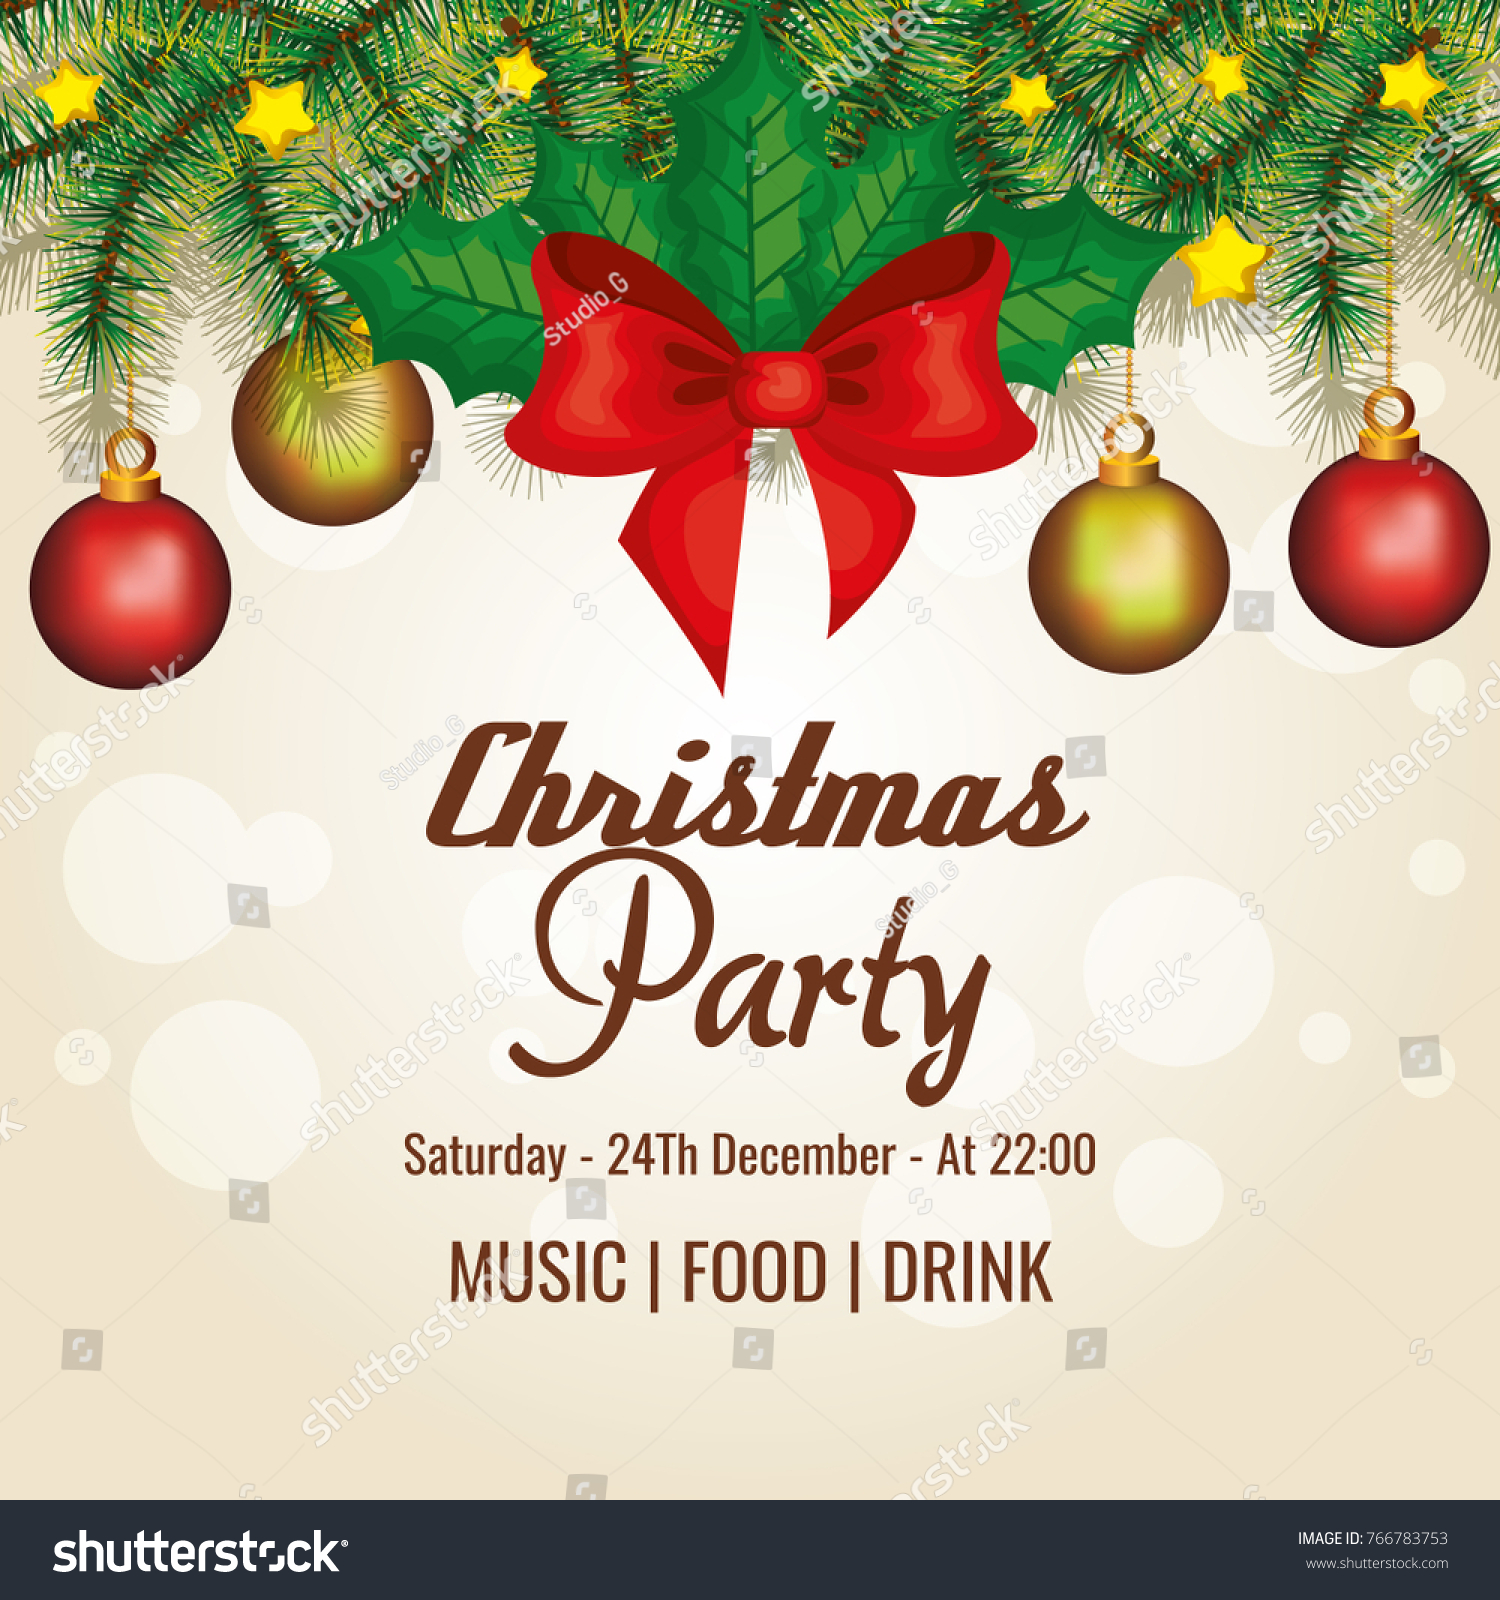 Invitation Christmas Party Stock Vector 766783753 - Shutterstock